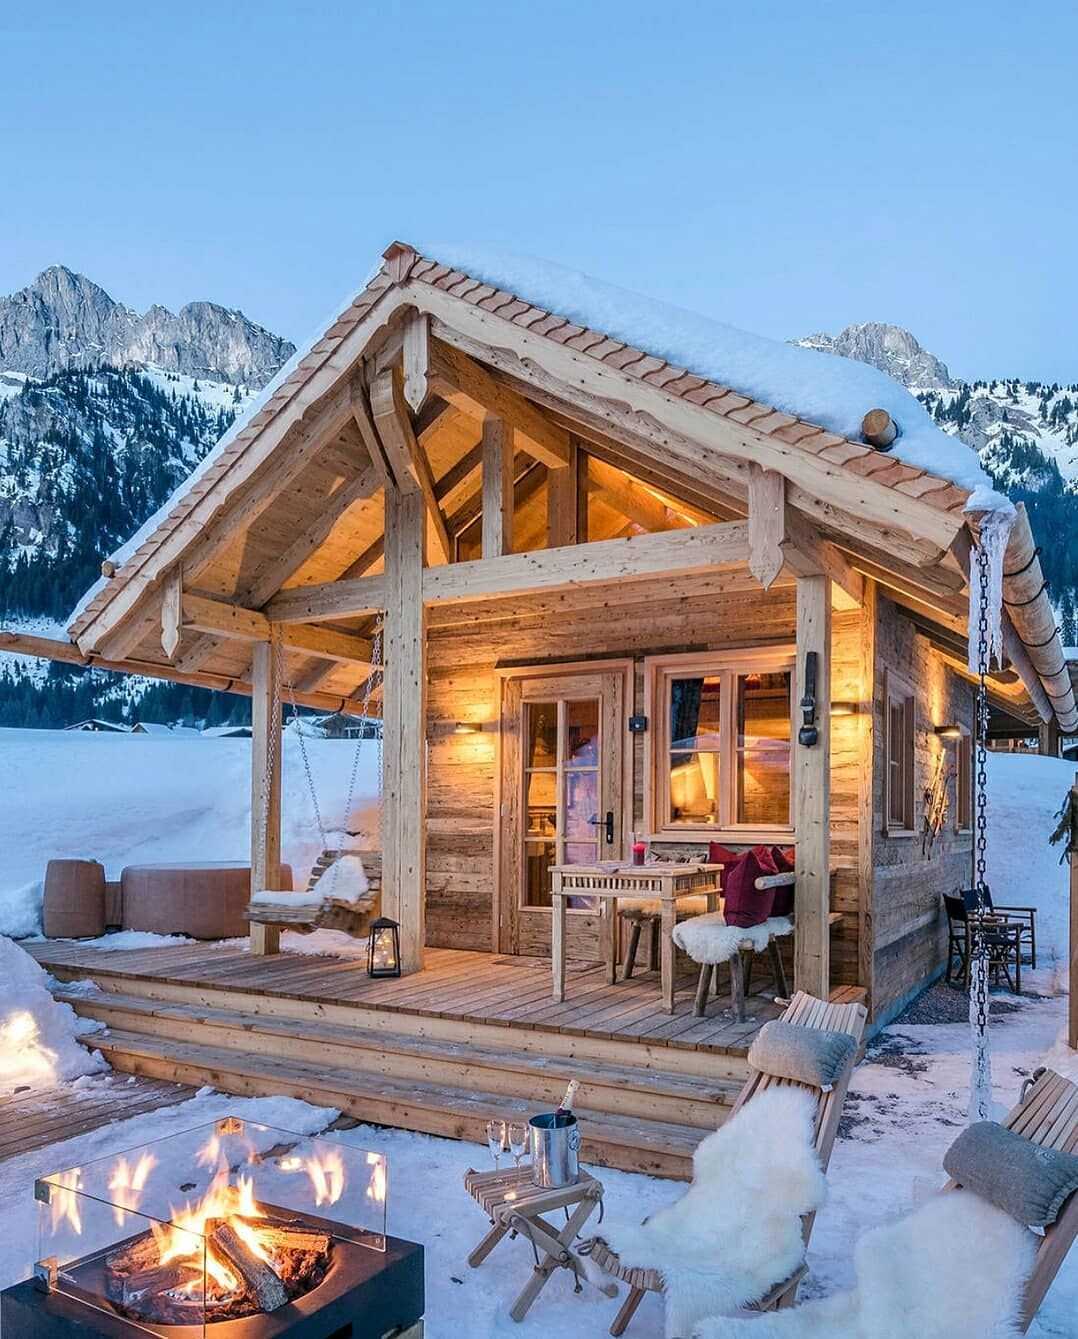 Chalet on instagram  cthanks to rustic houses for such  nice rusticdecor rusticchalet chaletdesign logcabin loghome mountainliving    also the best tiny house ideas pinterest cabin rh